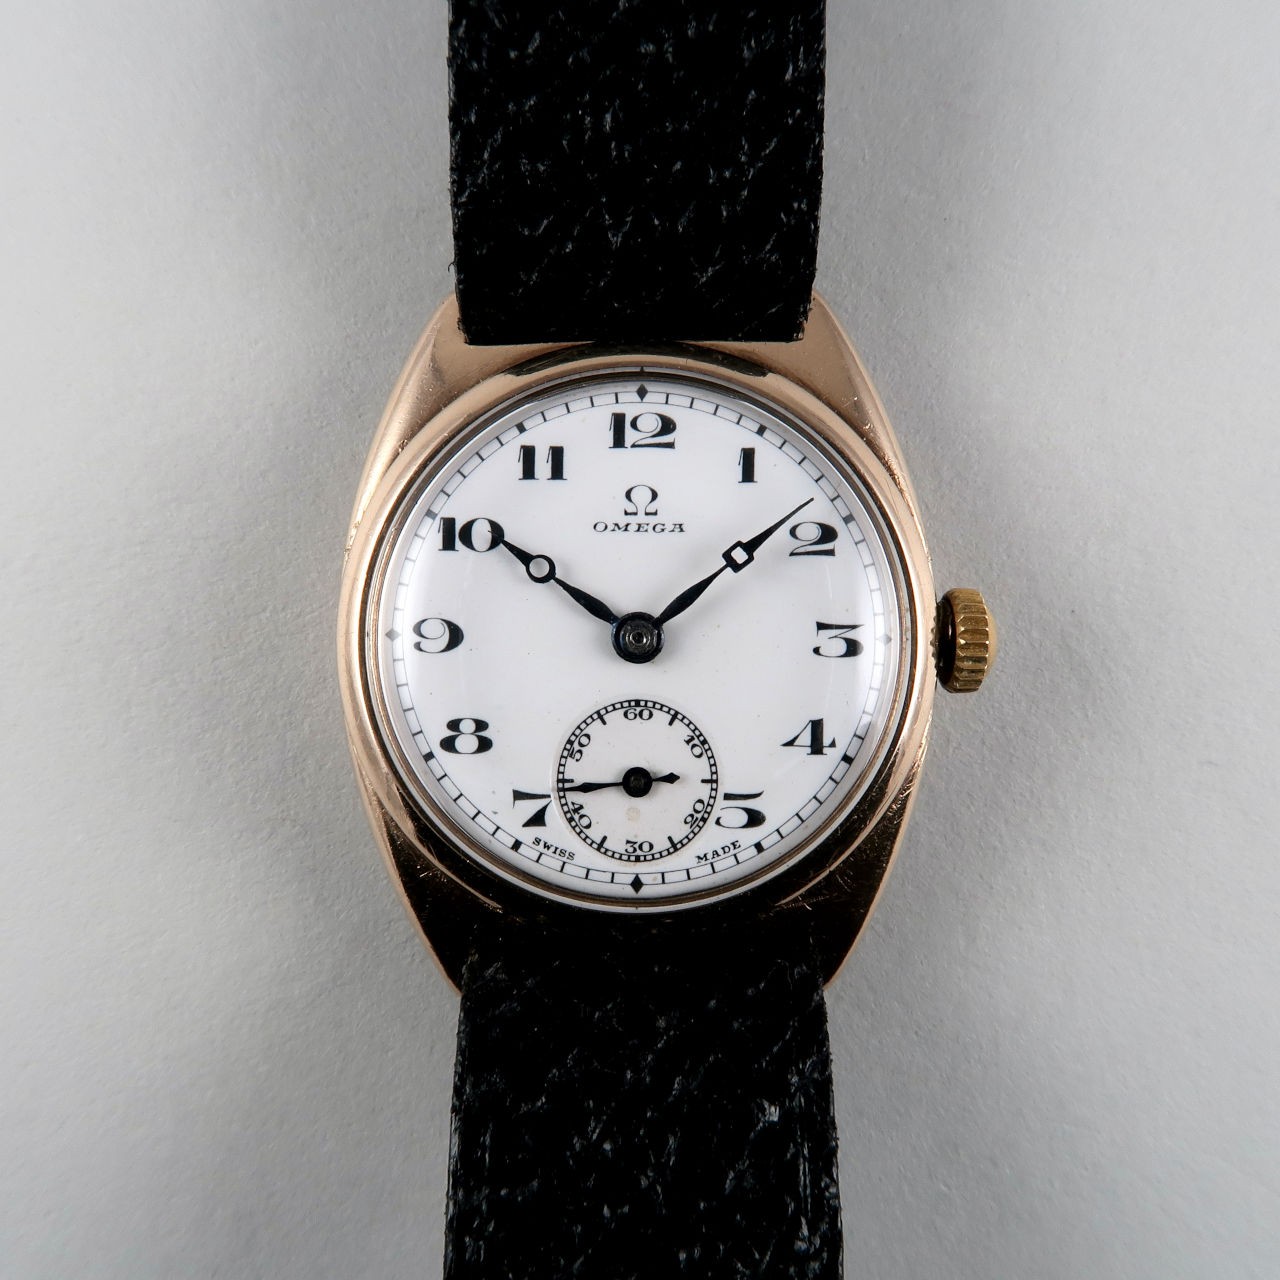 Omega Cal. 23.7S T2 hallmarked 1931   9ct gold hand wound vintage wristwatch with enamel dial